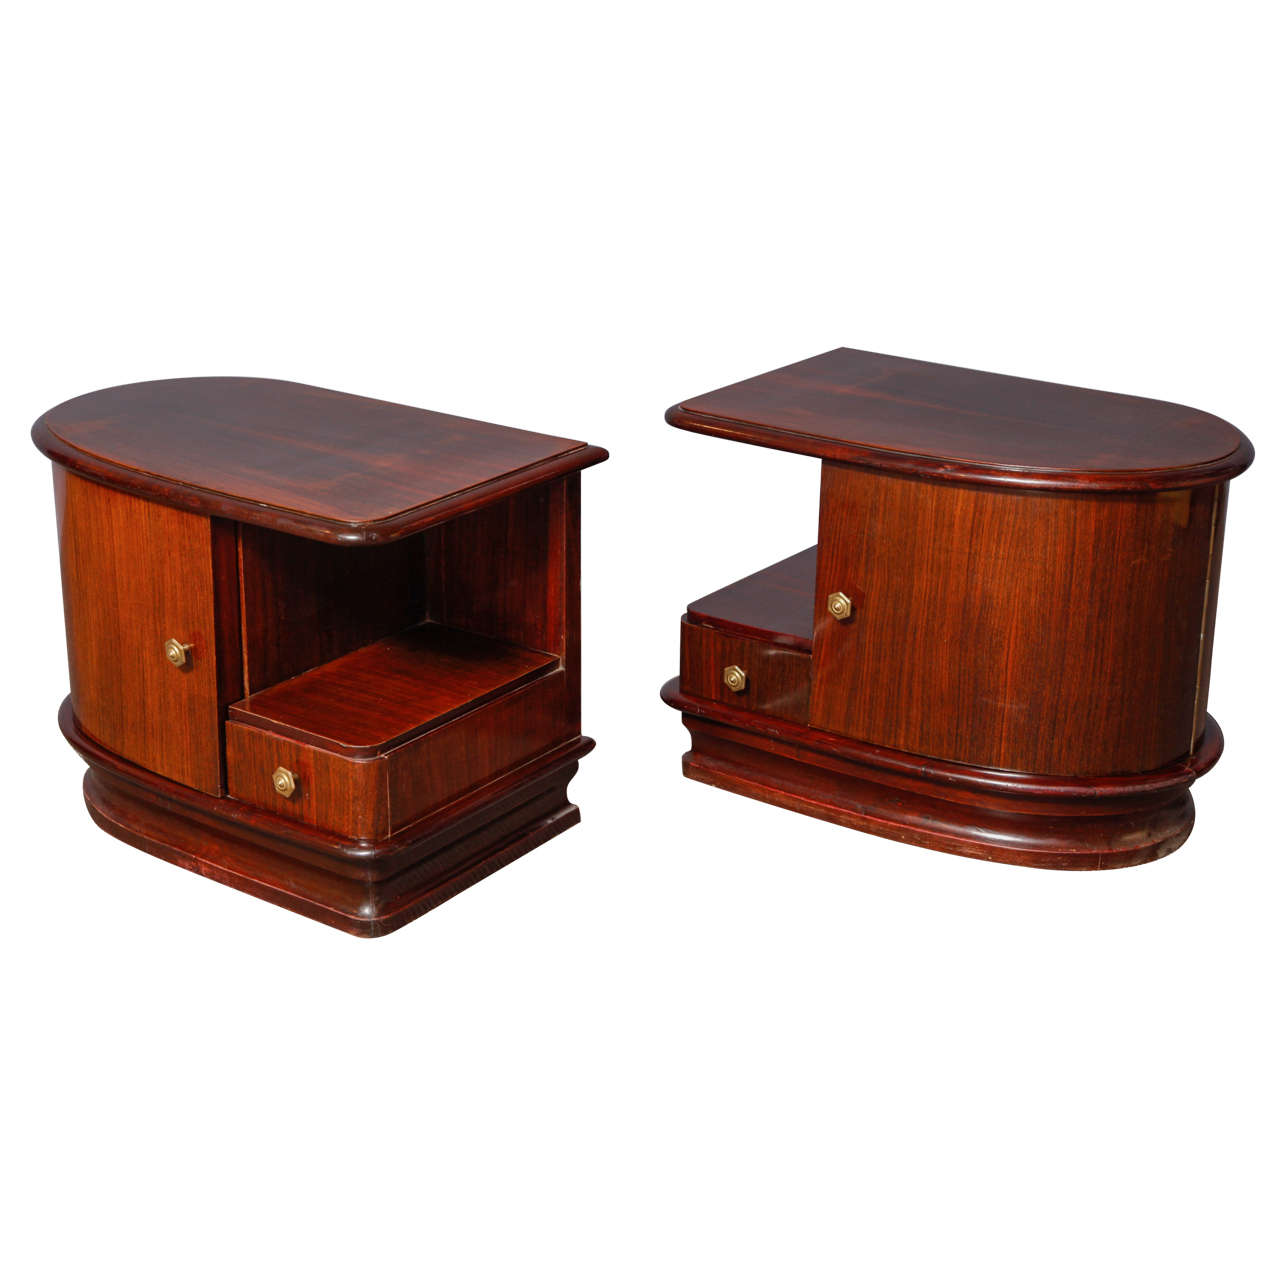 Pair of art deco night stands at 1stdibs - Table de chevet art deco ...